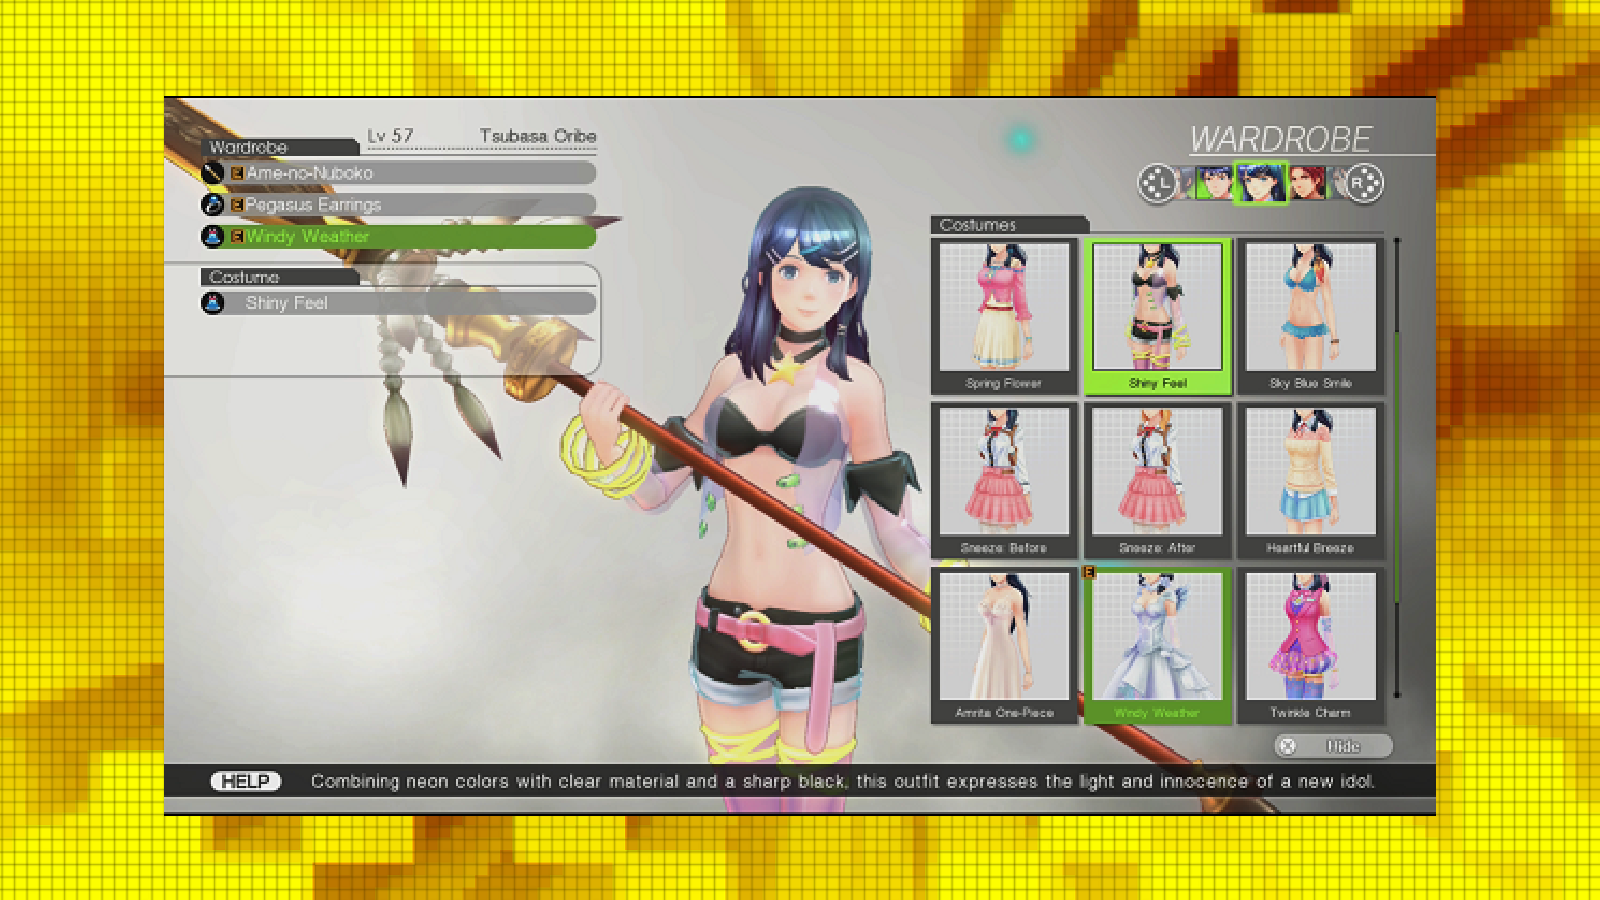 Interview with a dev behind the Tokyo Mirage Sessions #FE